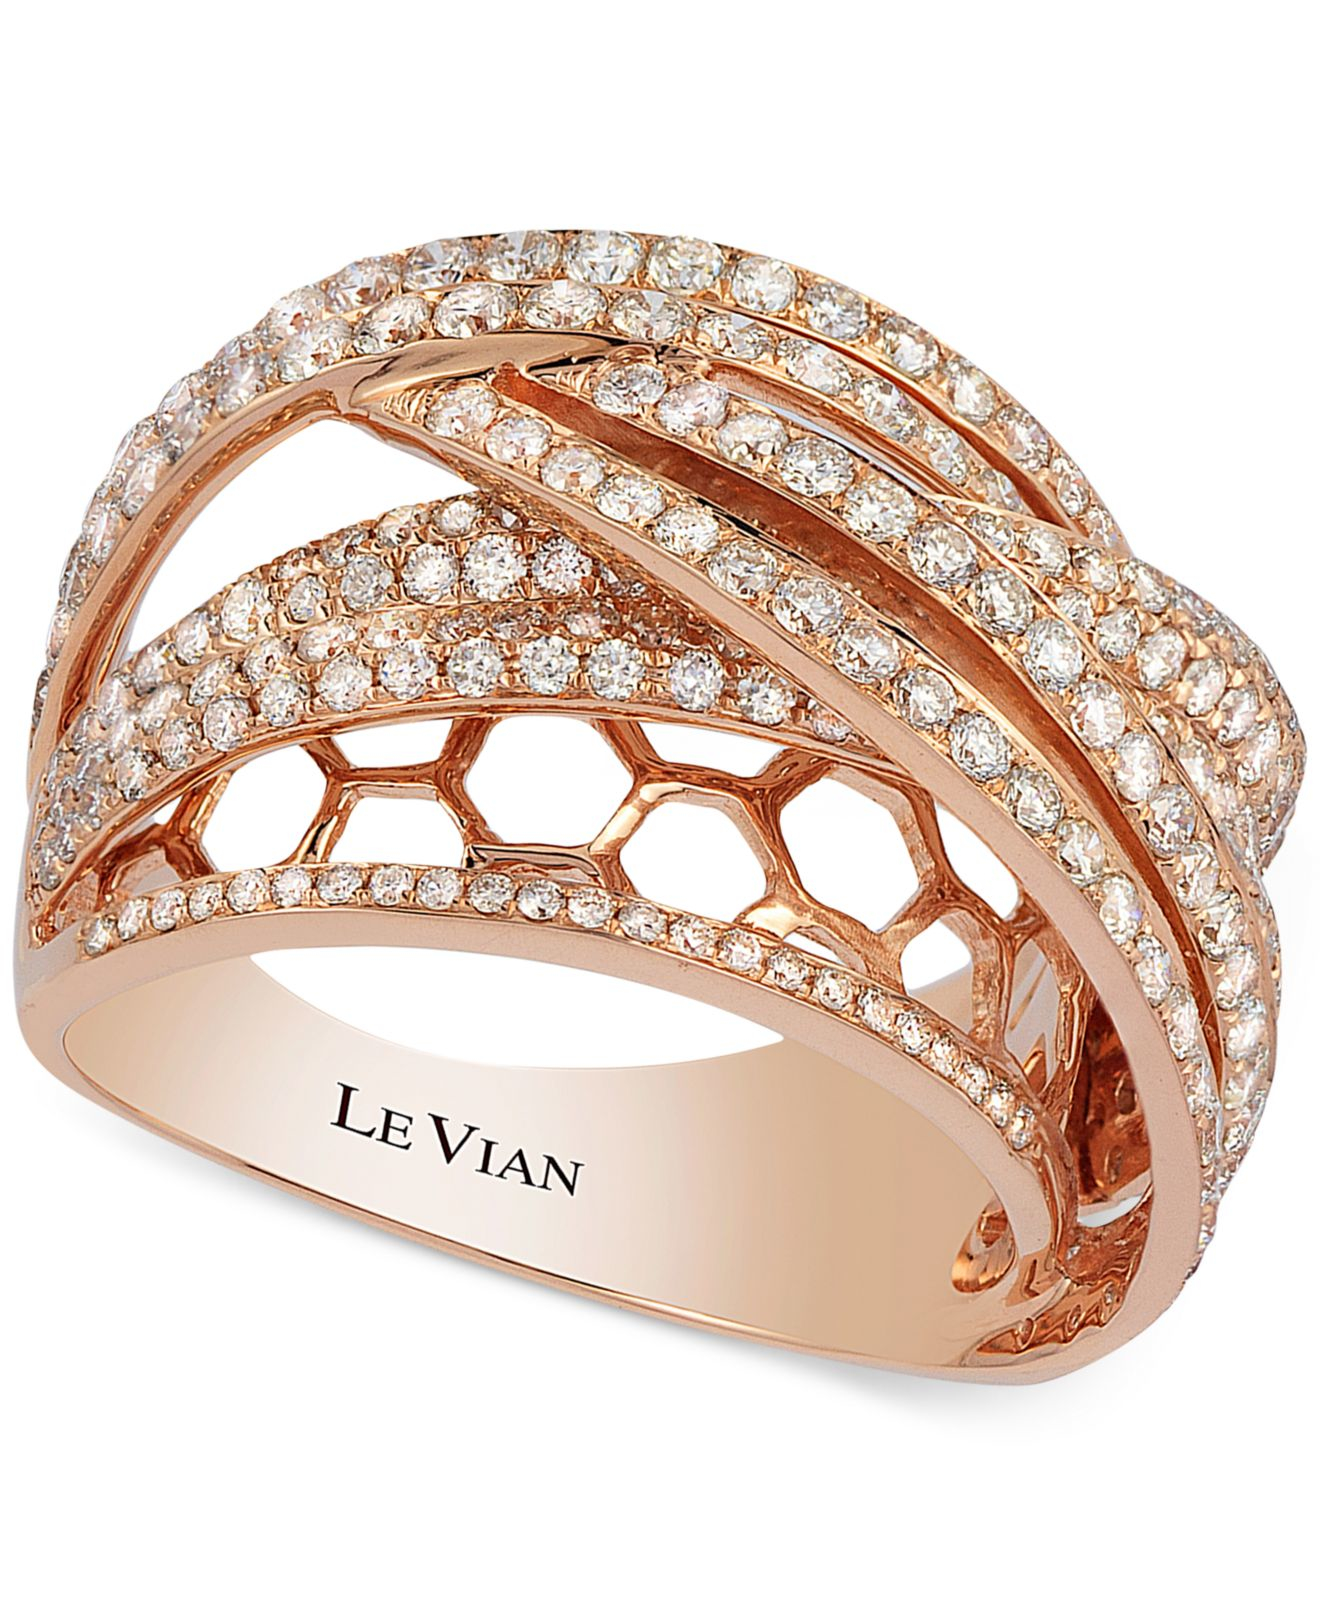 rose tribute the rings stone engagement collection ring diamond forevermark two layered gold product